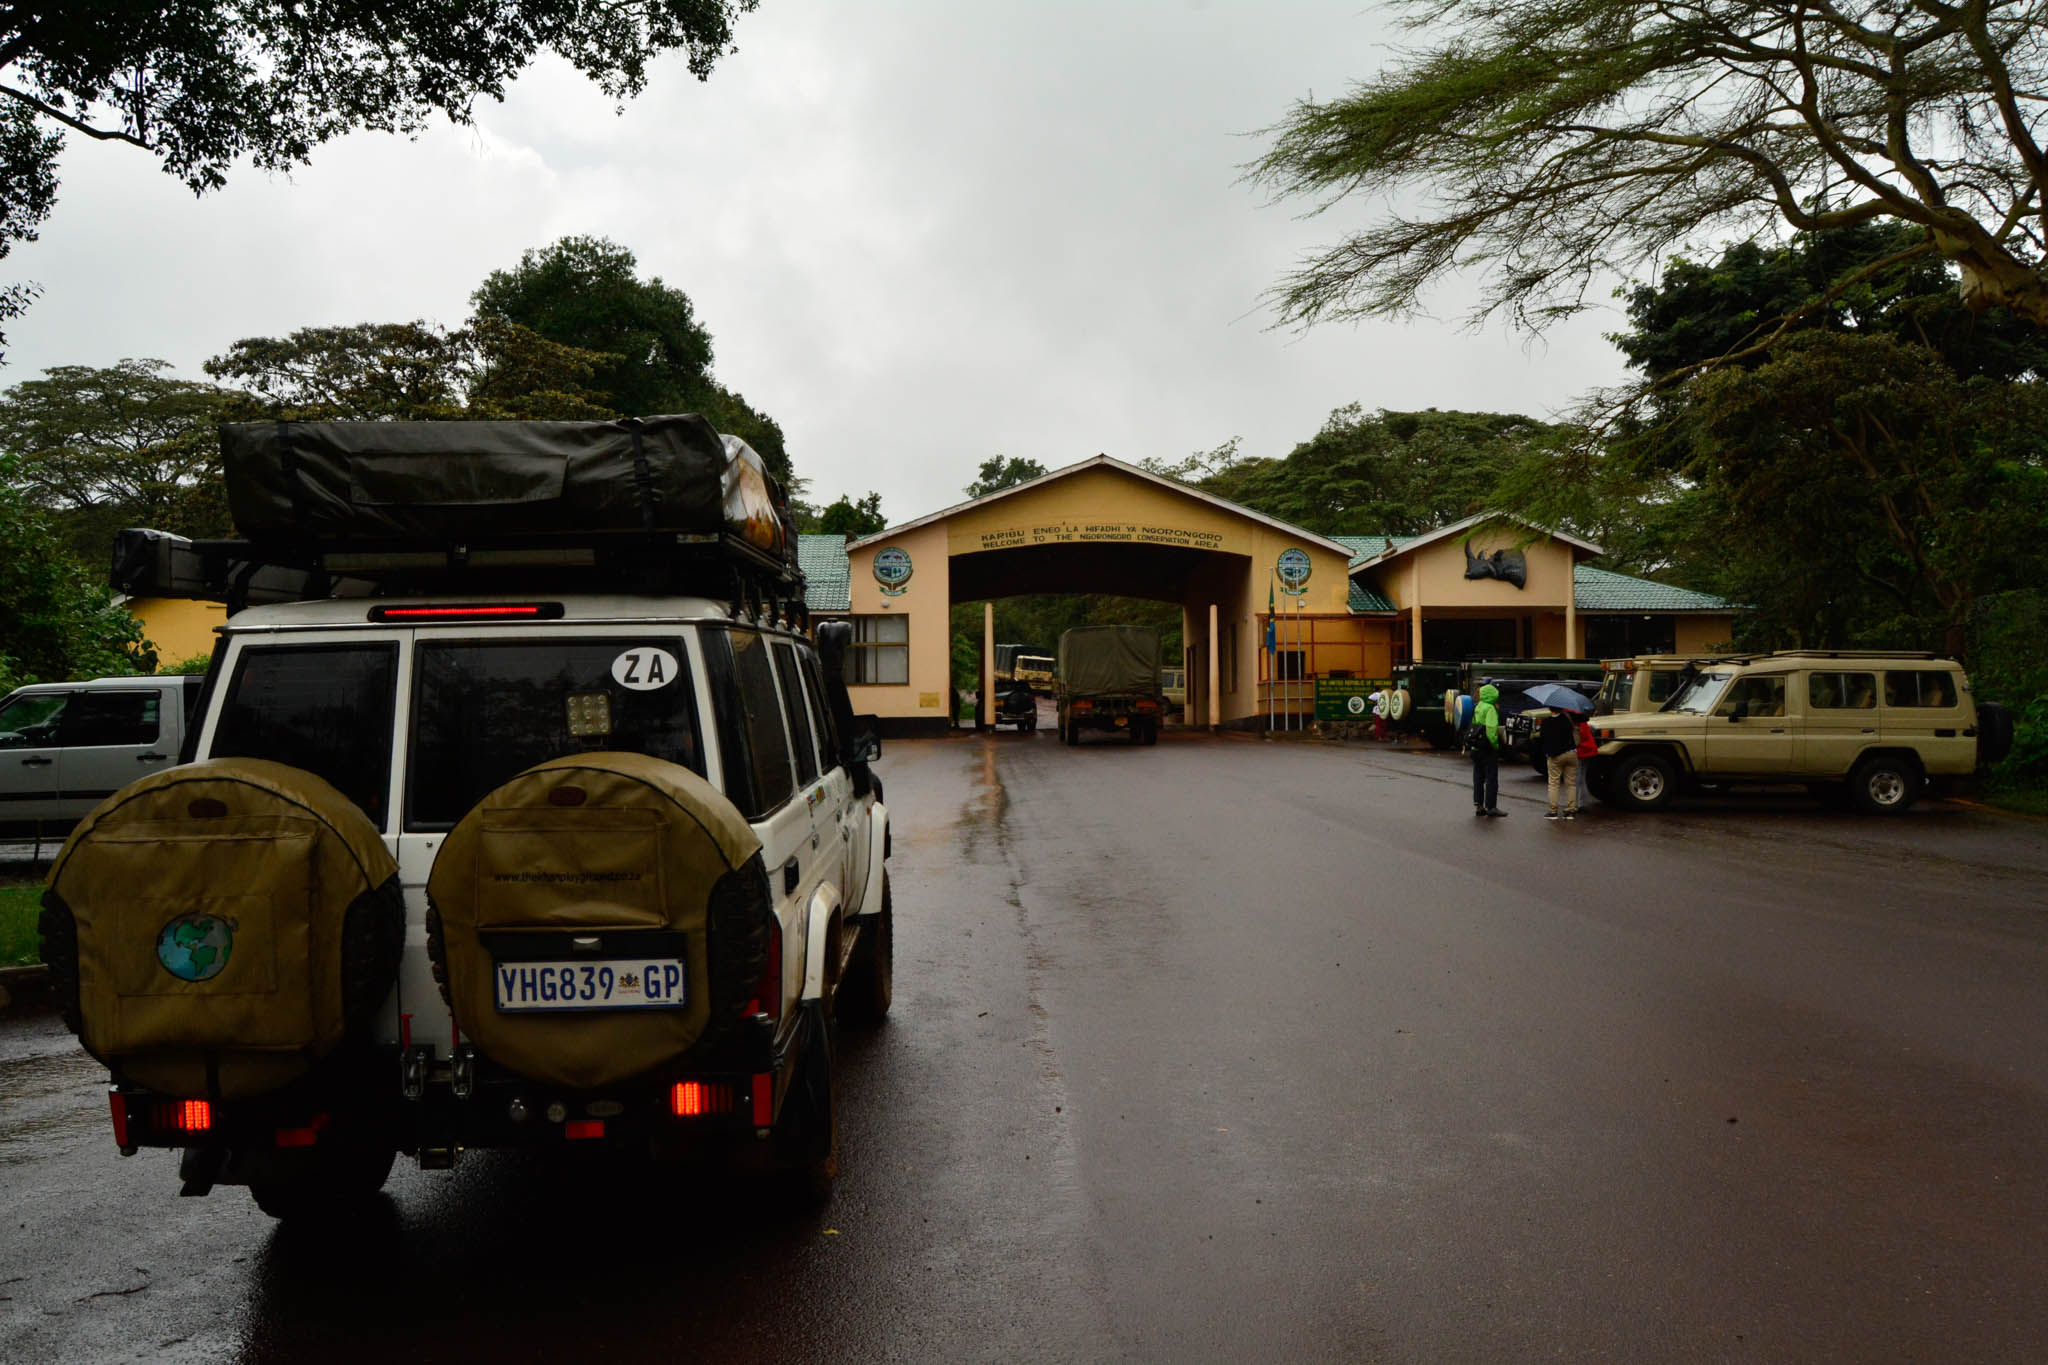 Entrance to the Ngorongoro Crater